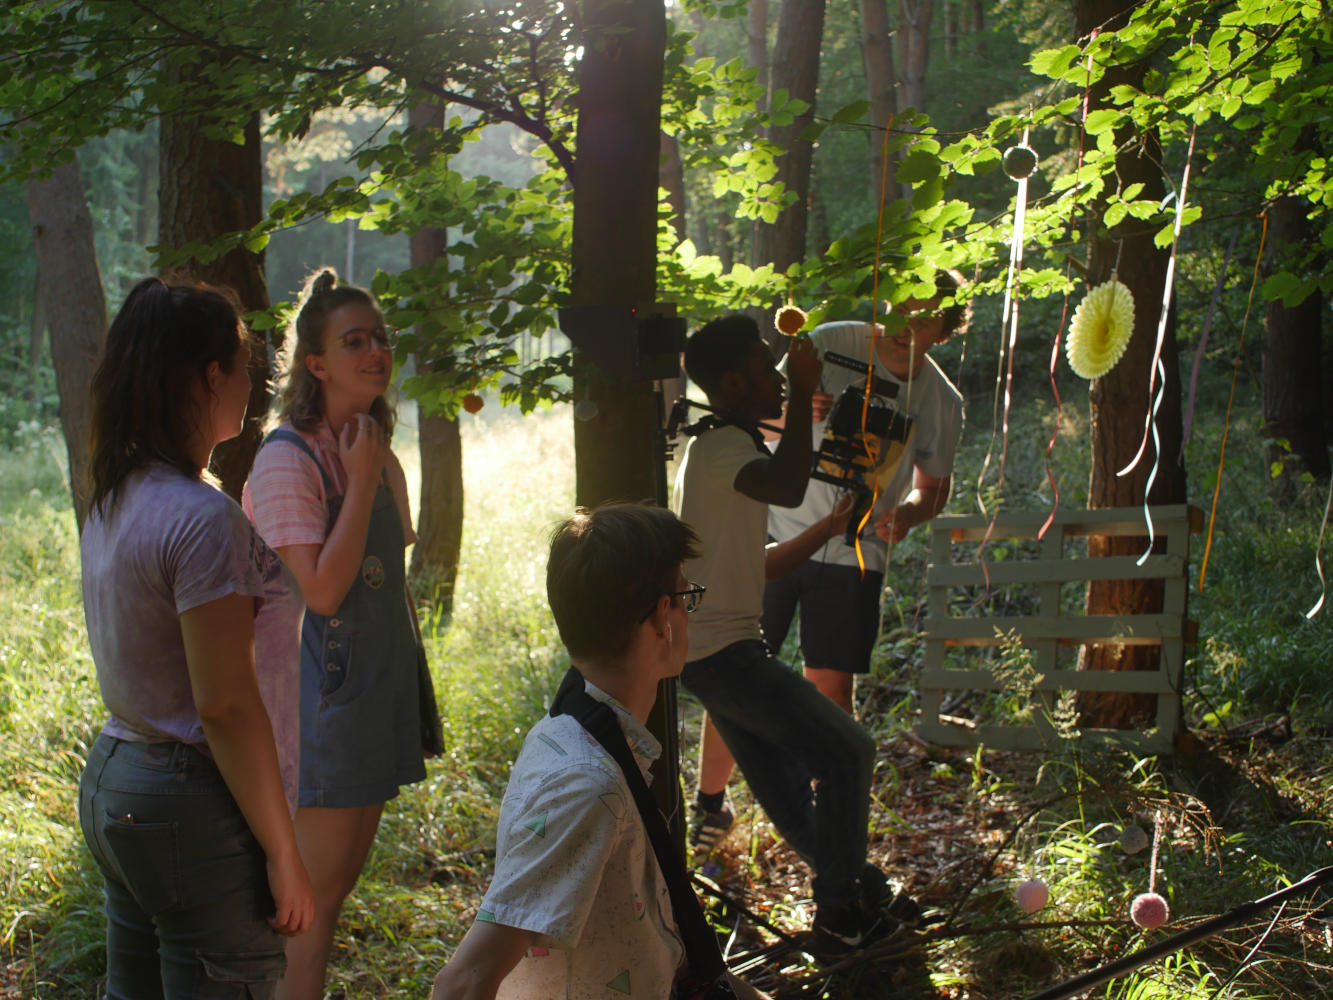 Behind the scenes image from short film Robyn of film crew in forest